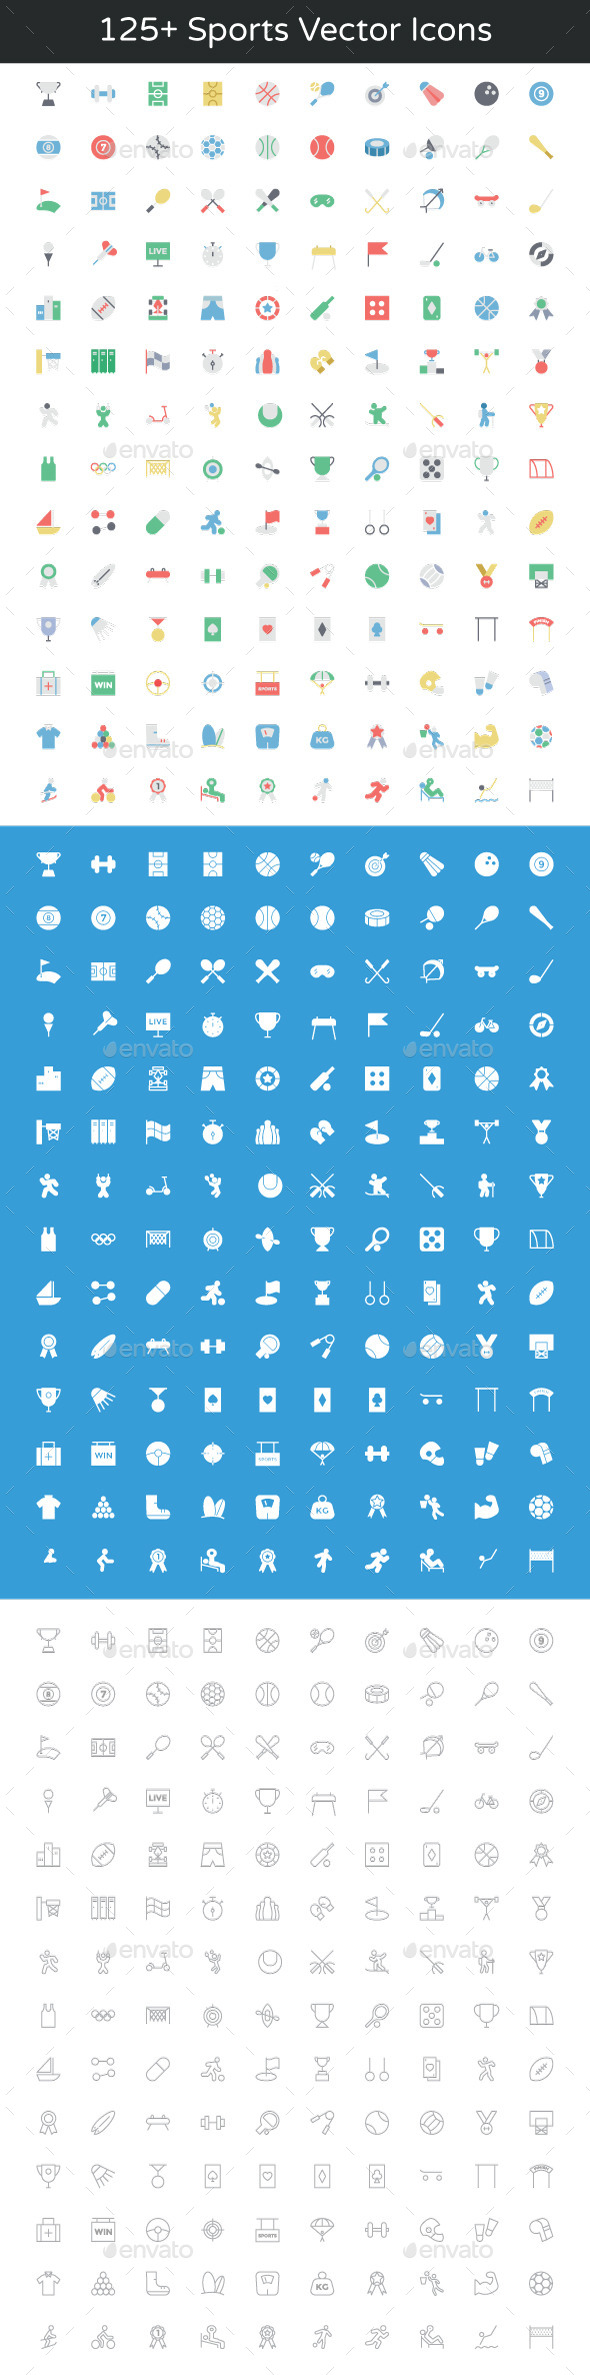 125+ Sports Vector Icons - Icons